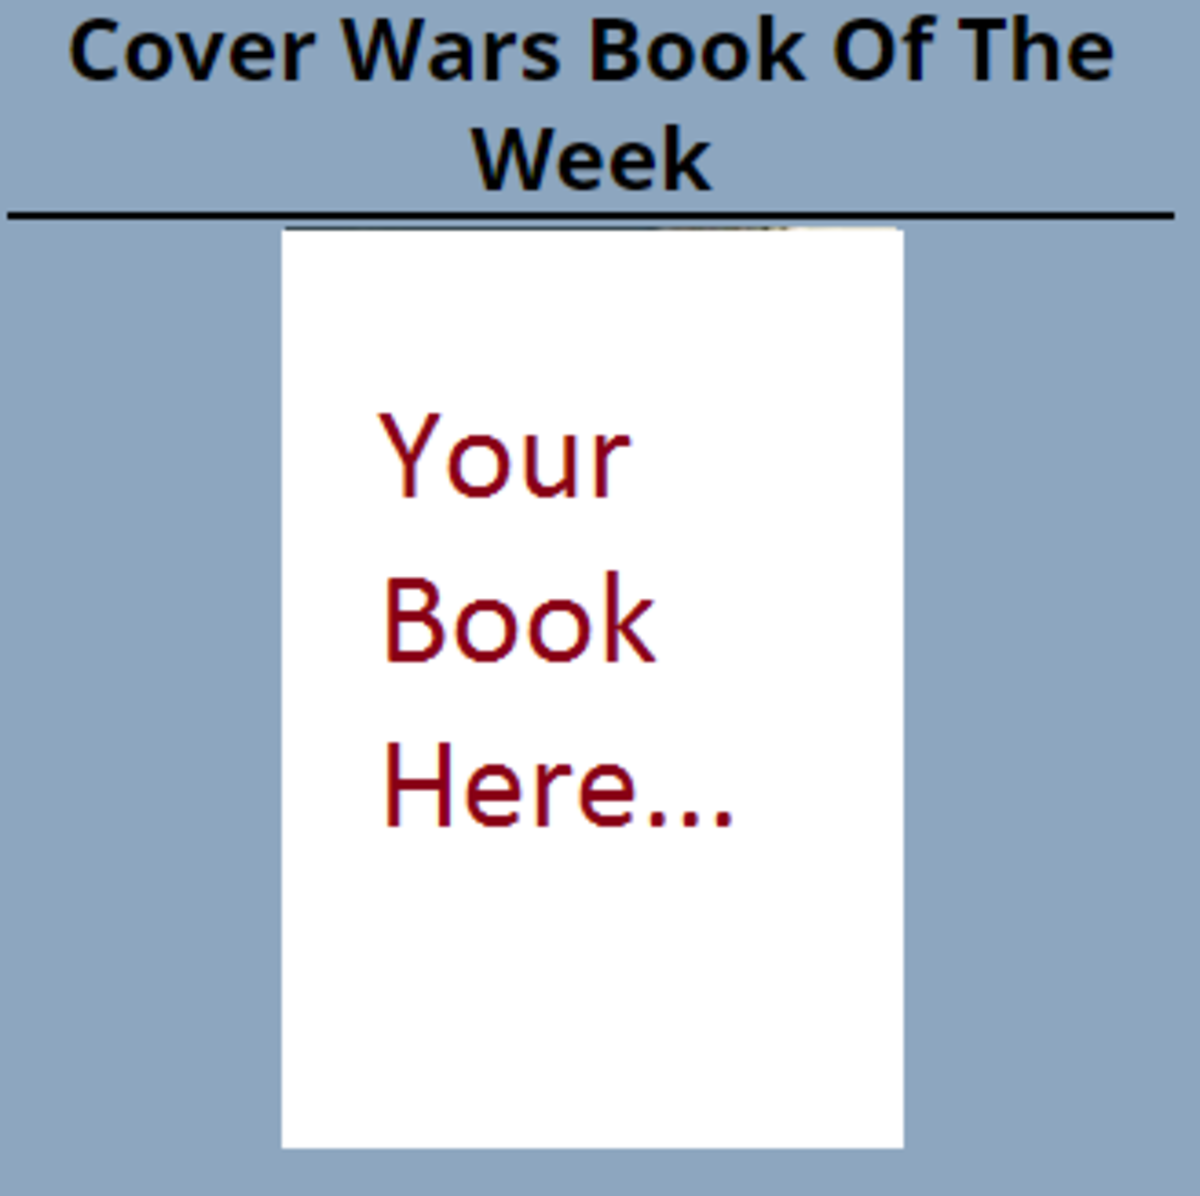 Cover Wars prize advertising slot.